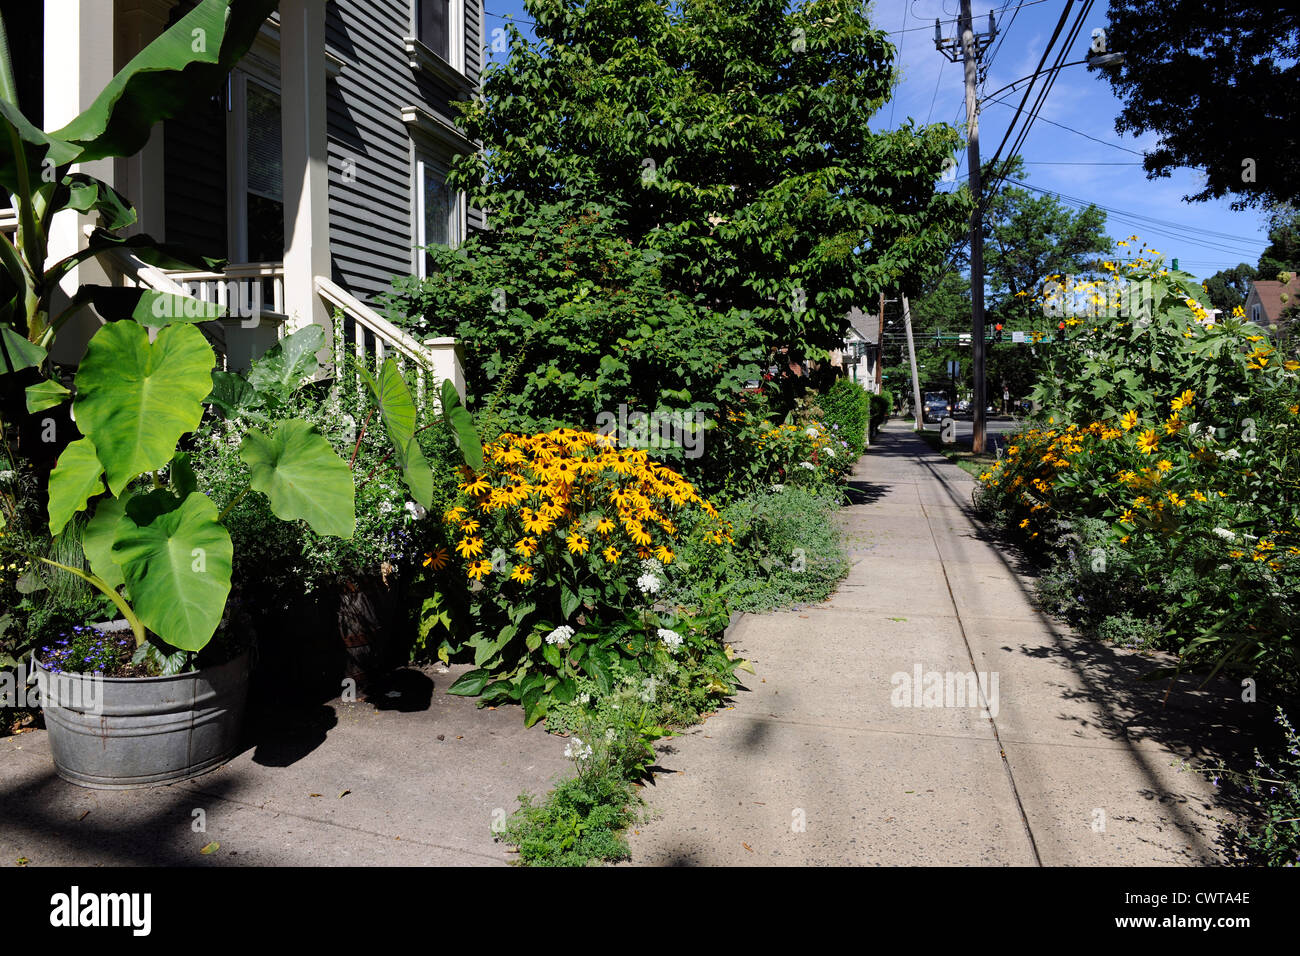 City sidewalk garden instead of lawn in New Haven, CT. - Stock Image